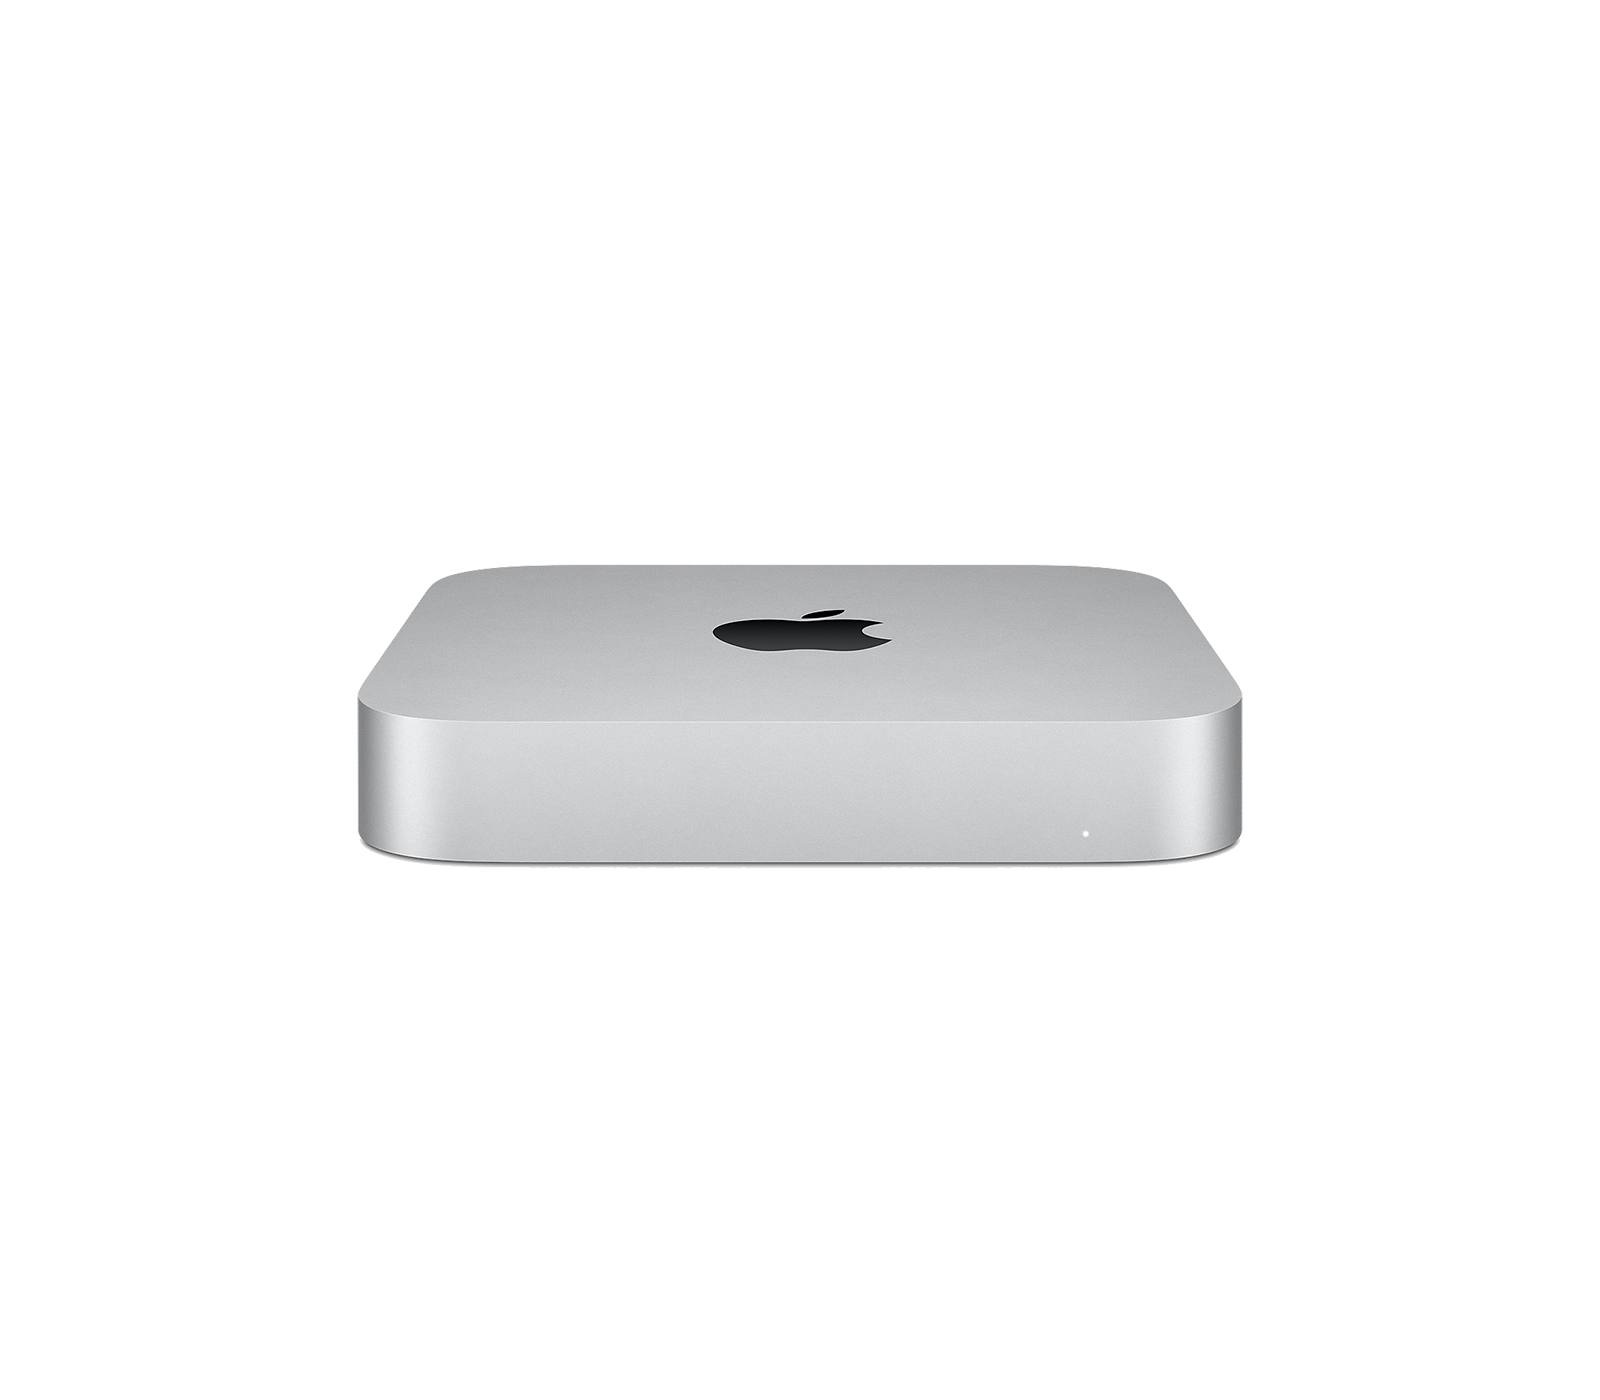 Apple M1 Mac mini price comparison